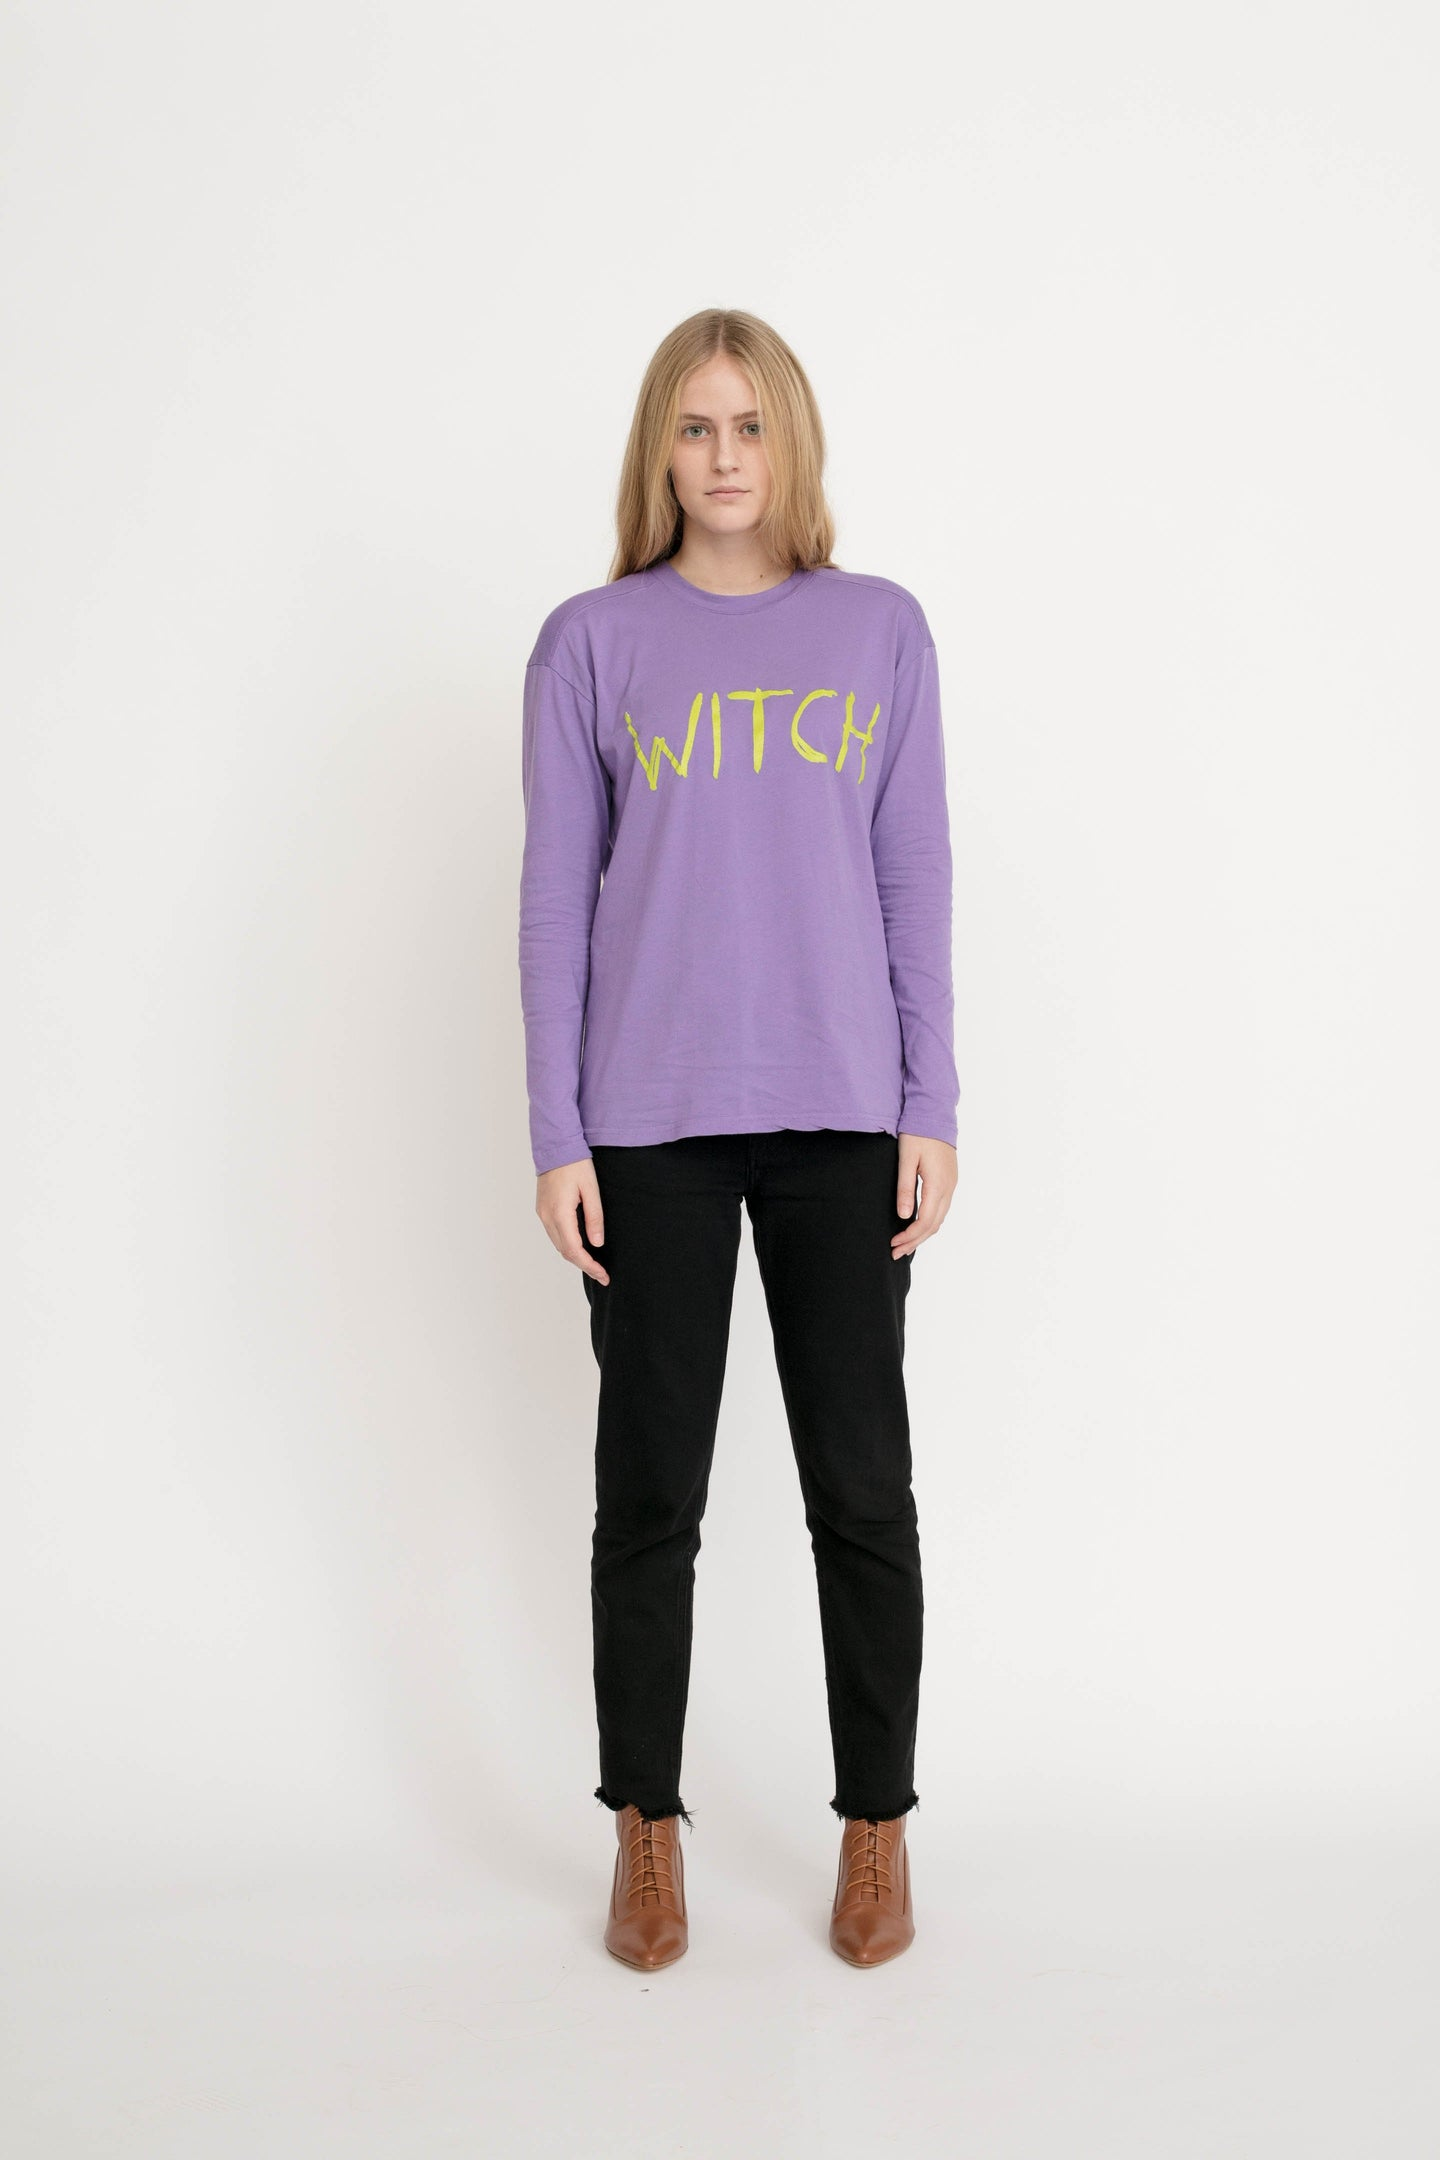 WITCH LONG SLEEVE